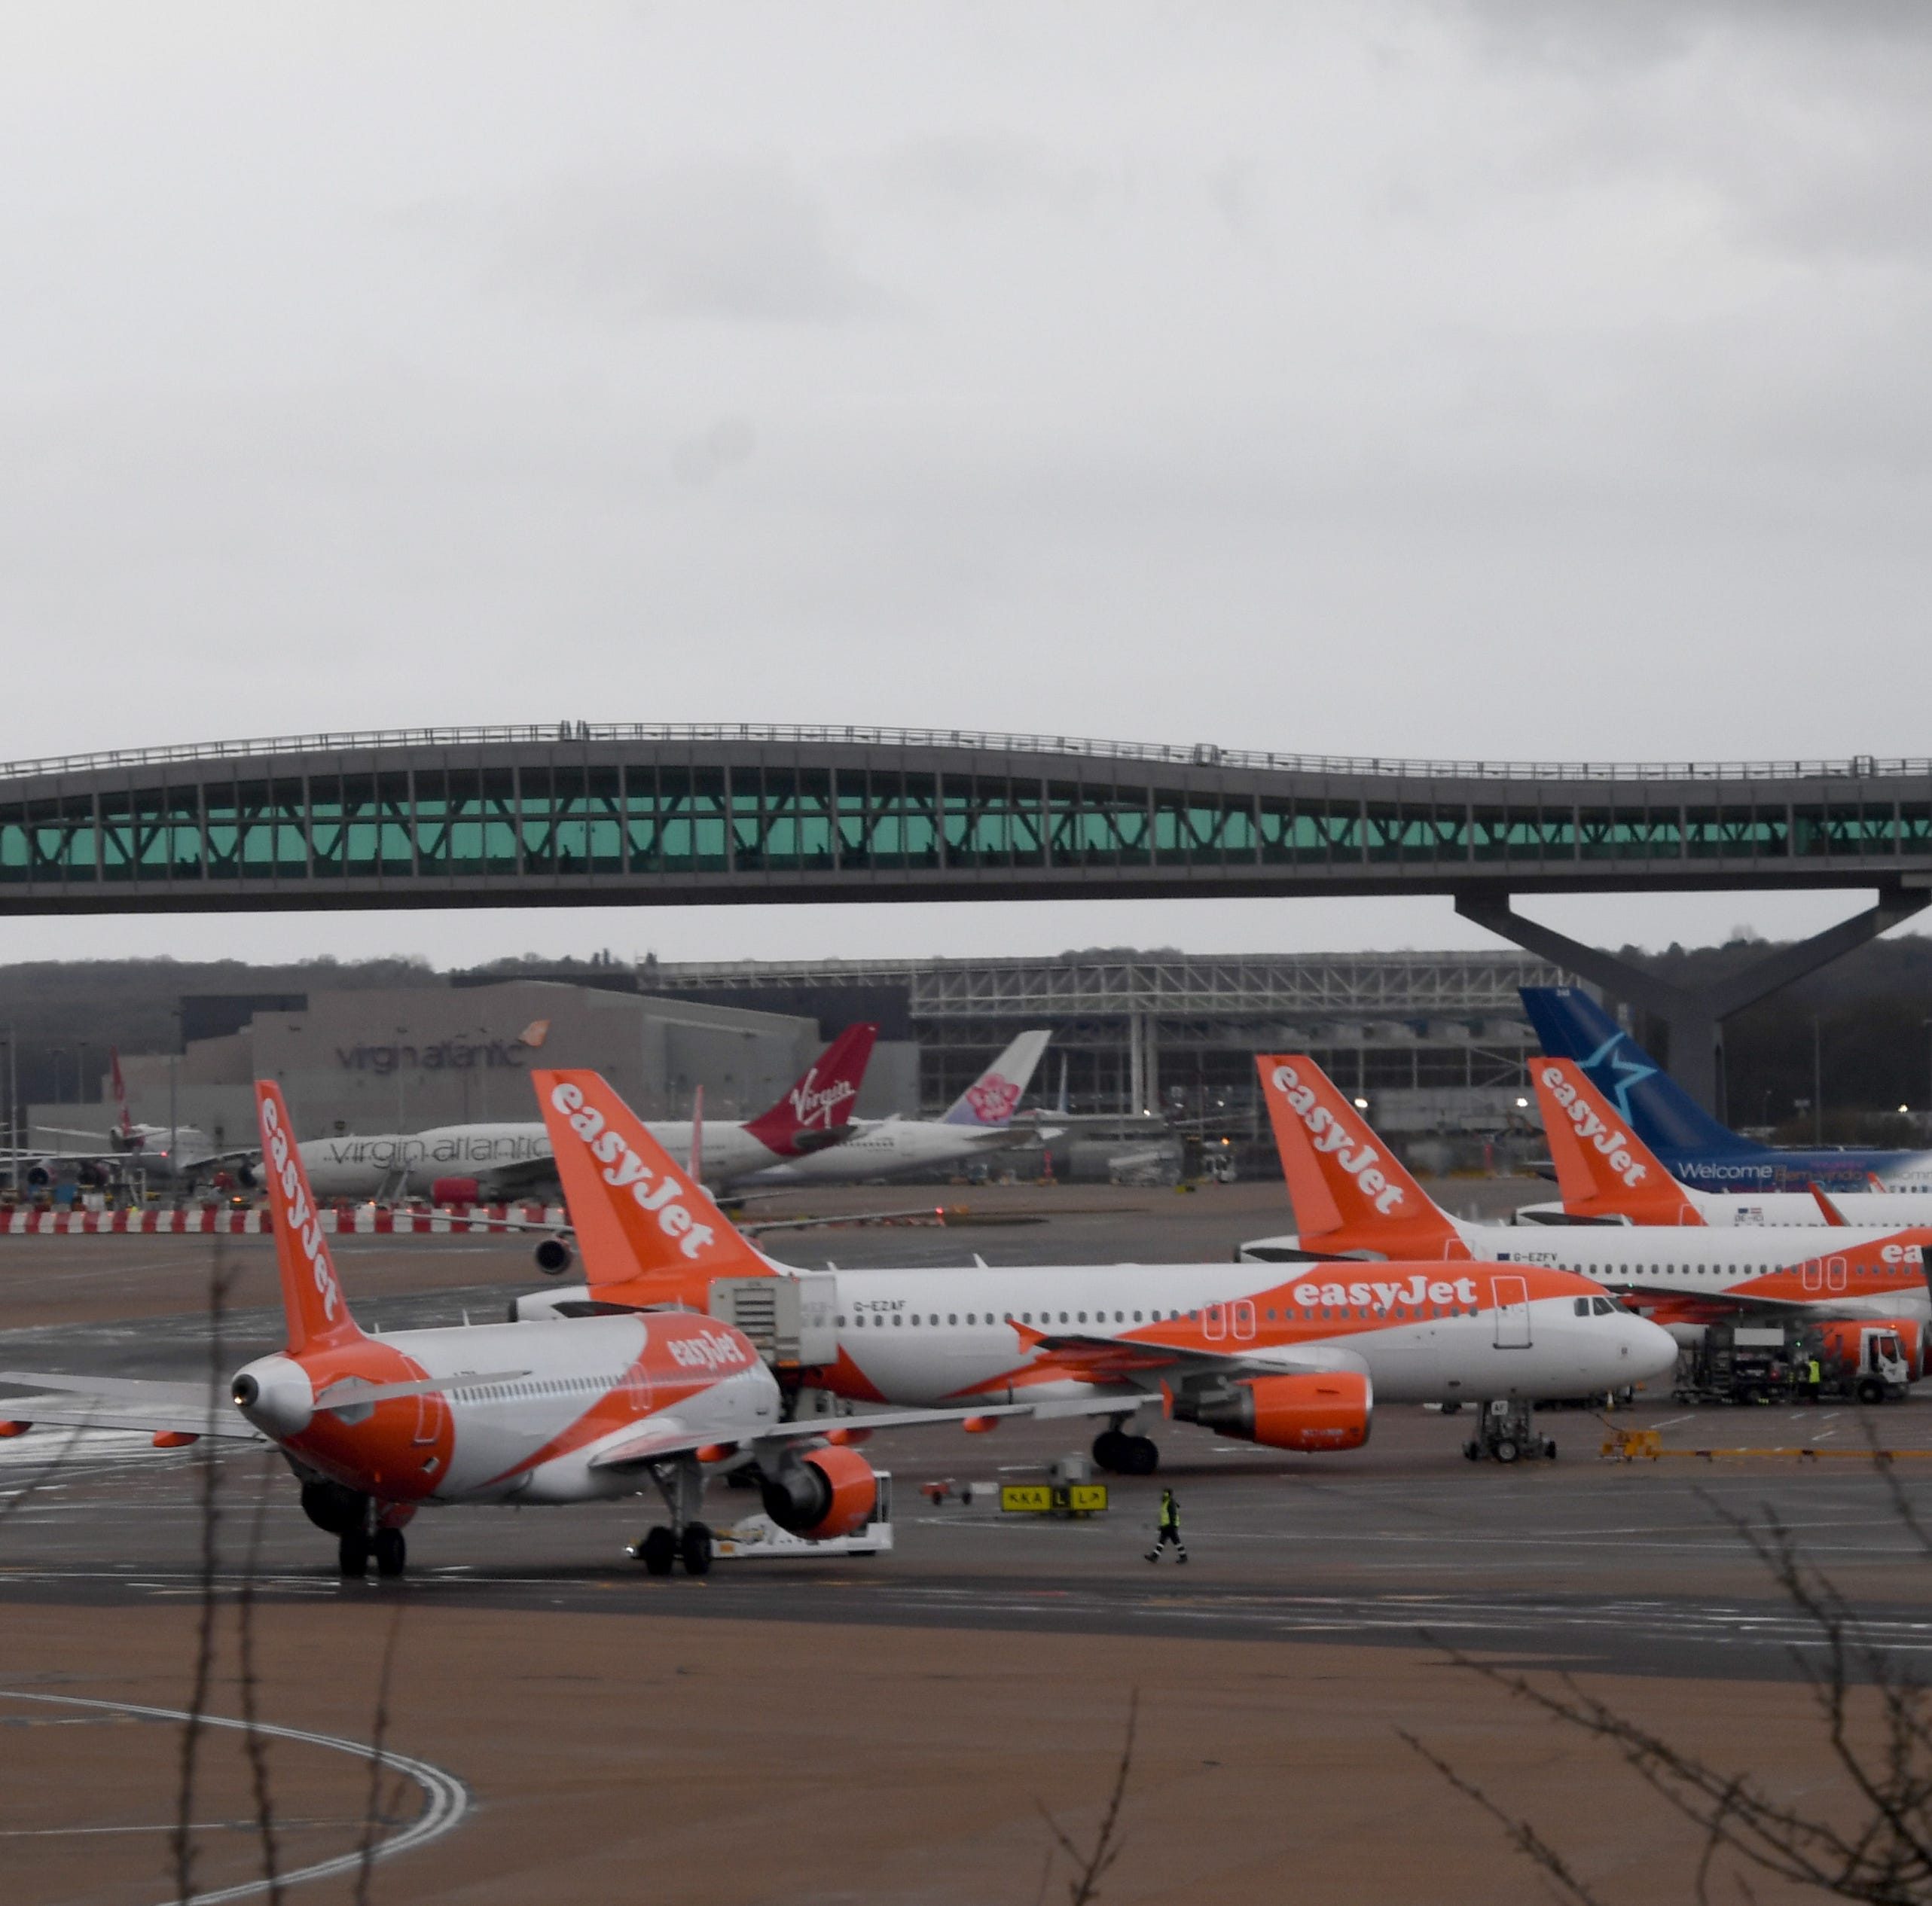 Planes are parked on a tarmac of the Gatwick airport in Sussex, southeast, England, 21 December 2018. Britain's second busiest airport Gatwick was shut down by authorities after sightings of drones flying but has since then reopened.